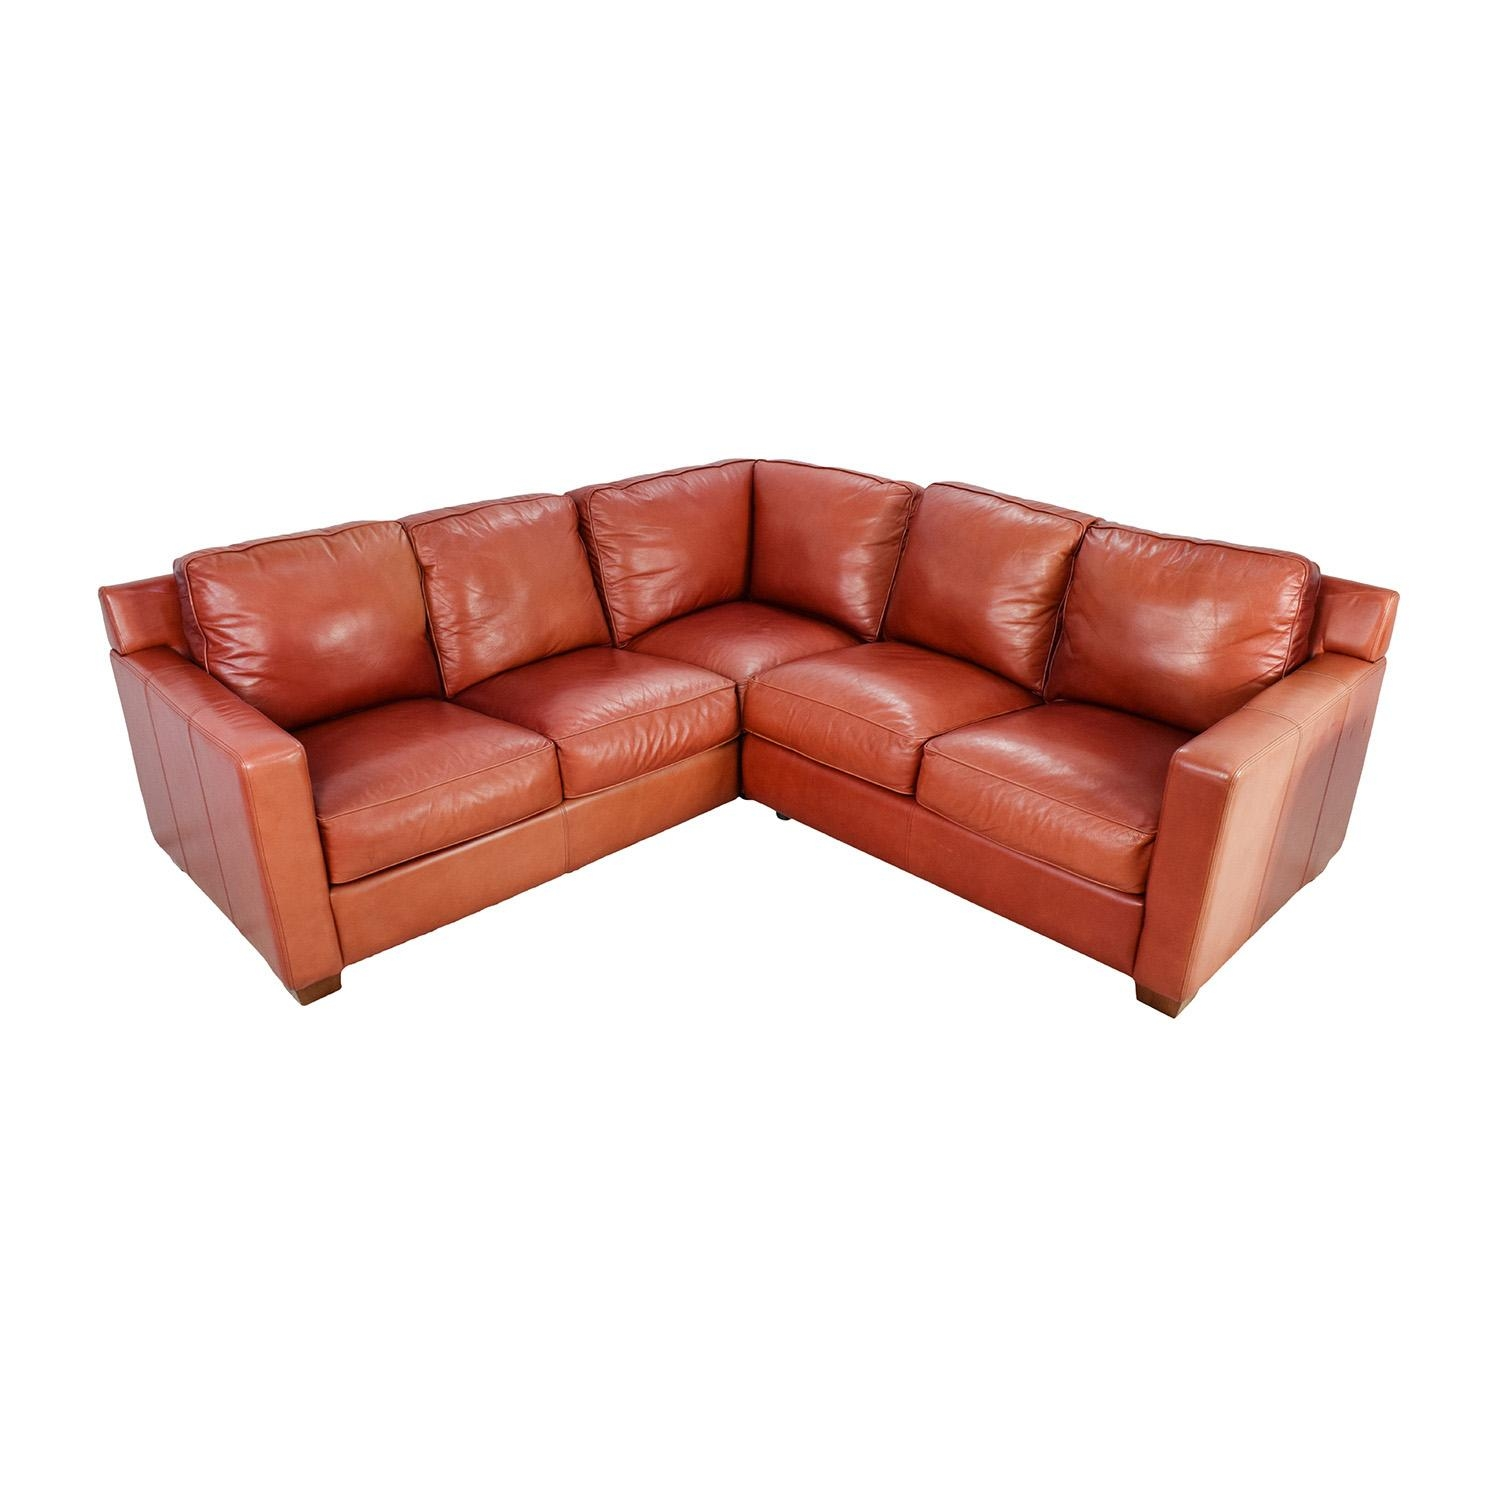 68% Off – Thomasville Thomasville Red Leather Sectional / Sofas Intended For Thomasville Leather Sectionals (View 7 of 20)